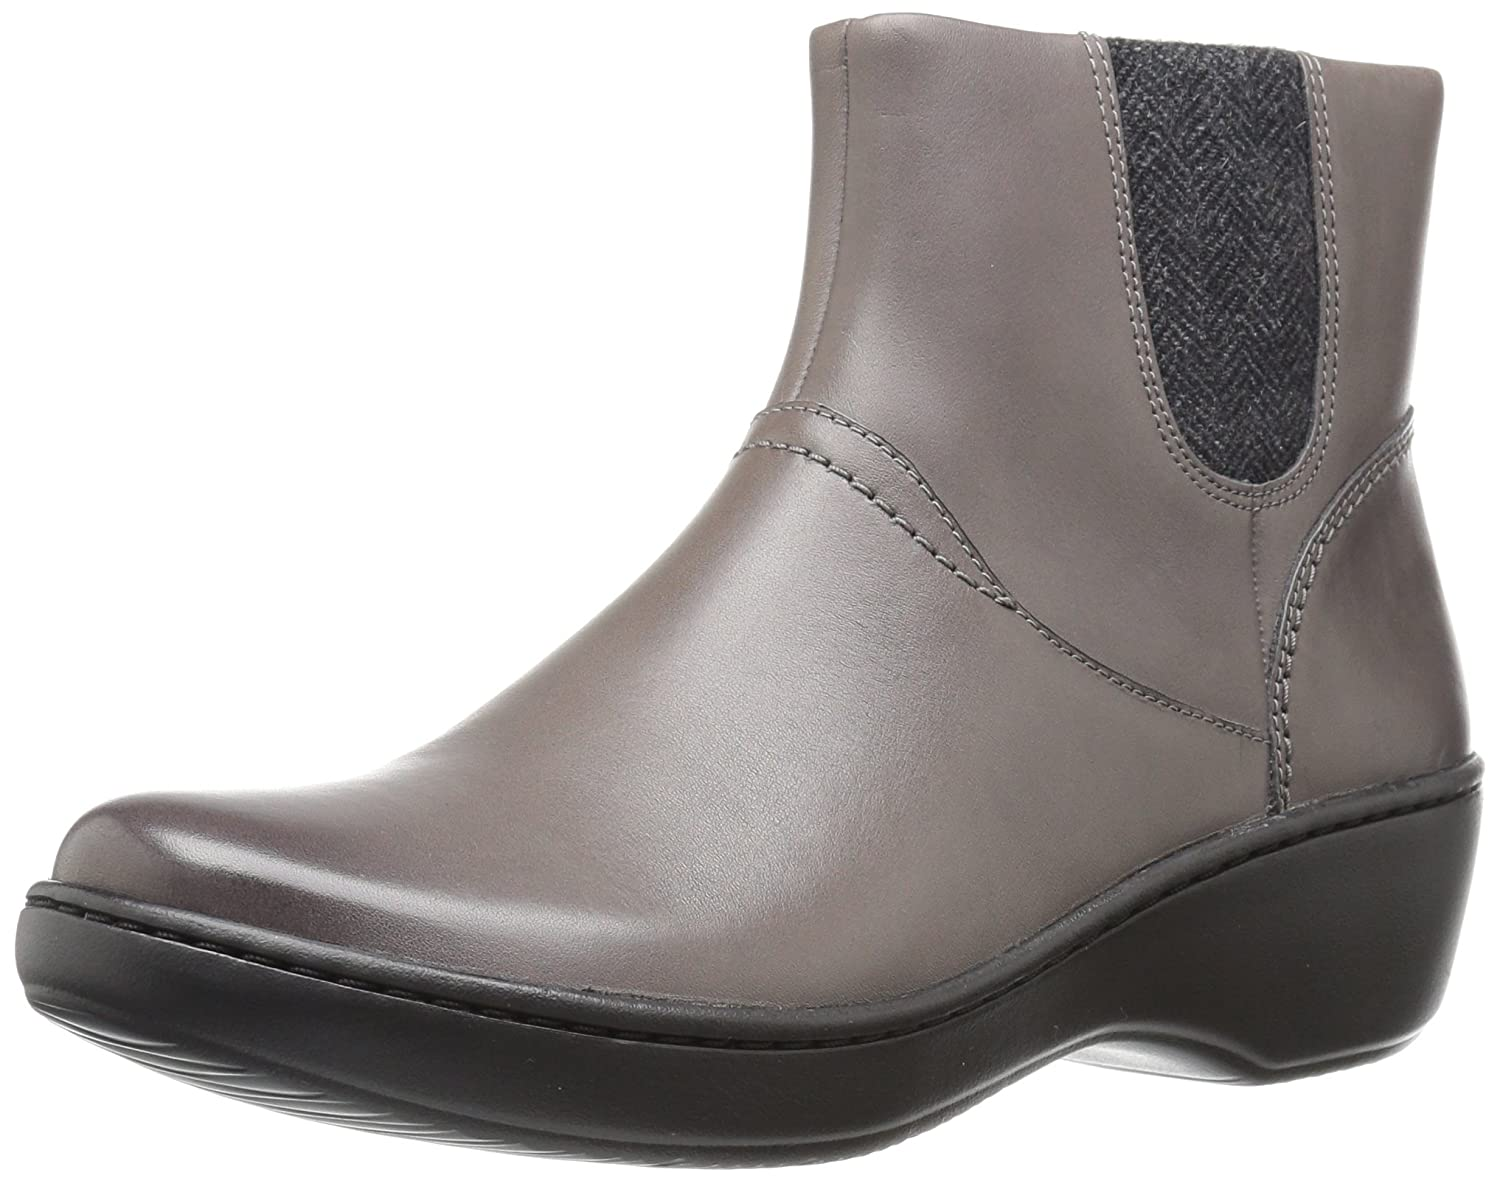 CLARKS Women's Delana Joleen Boot B01MY58FDP 12 W US|Grey Leather